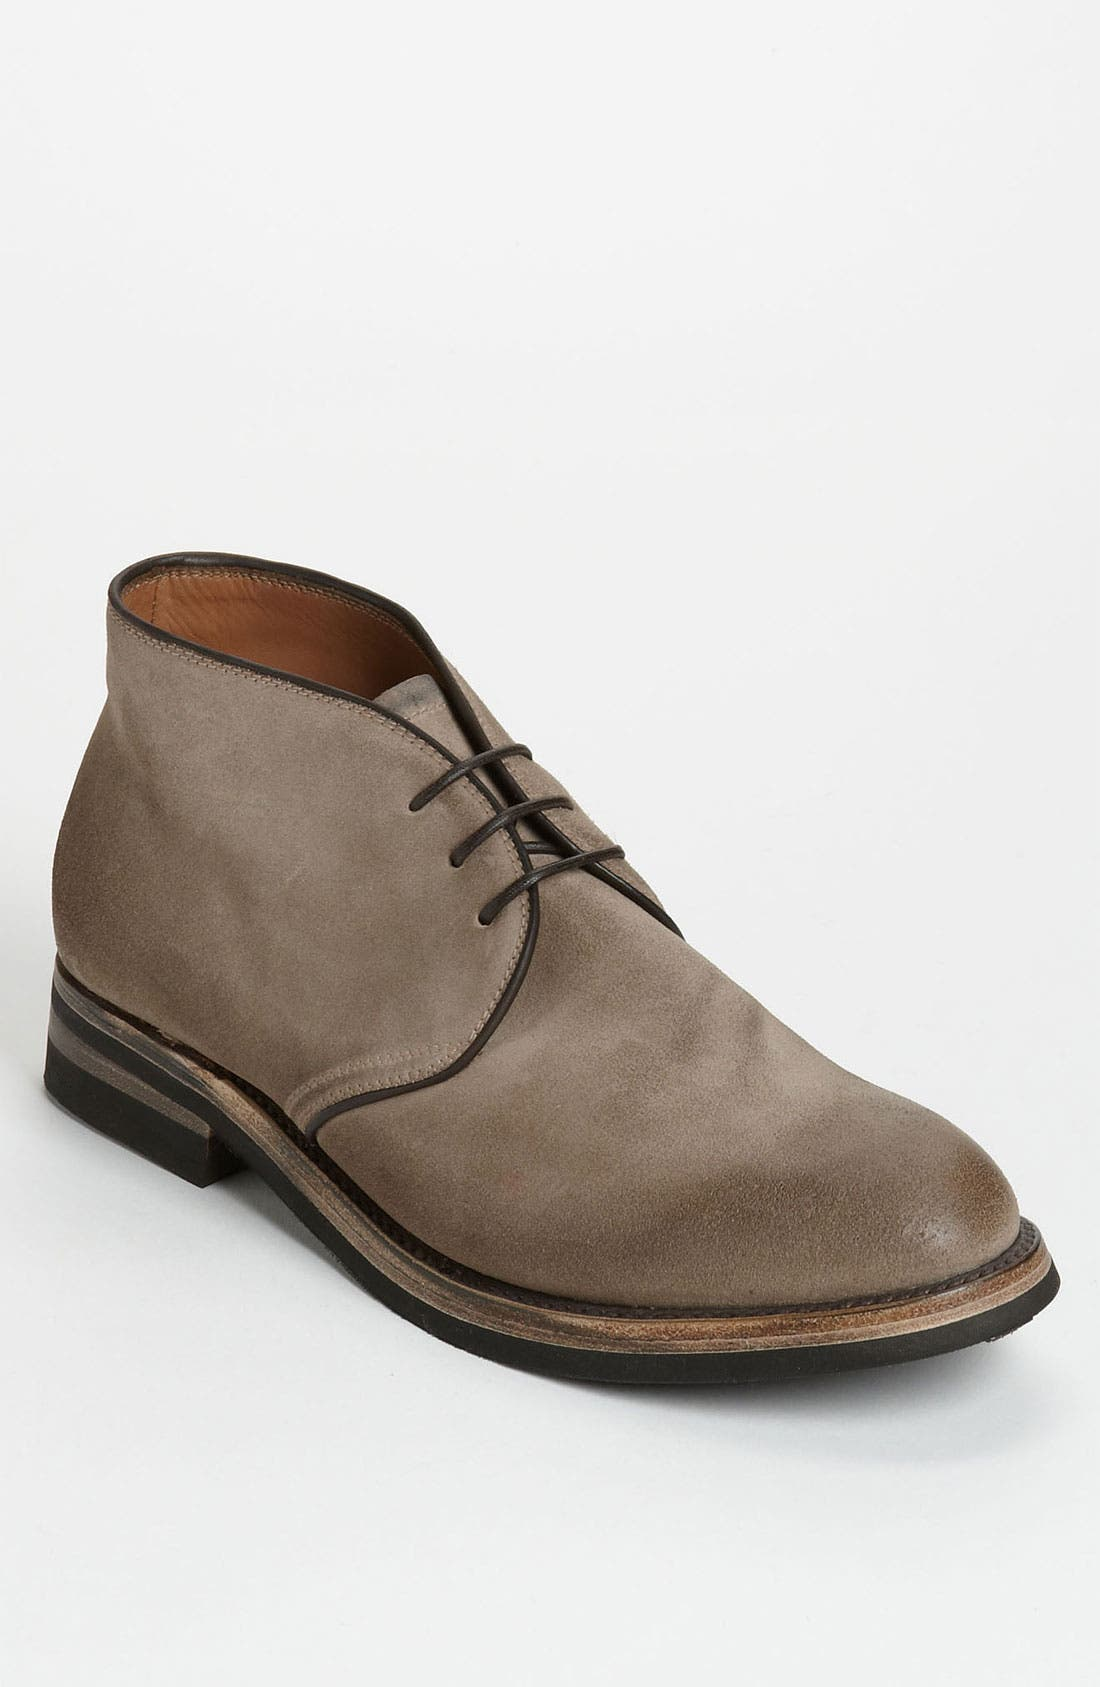 Alternate Image 1 Selected - Sassetti Chukka Boot